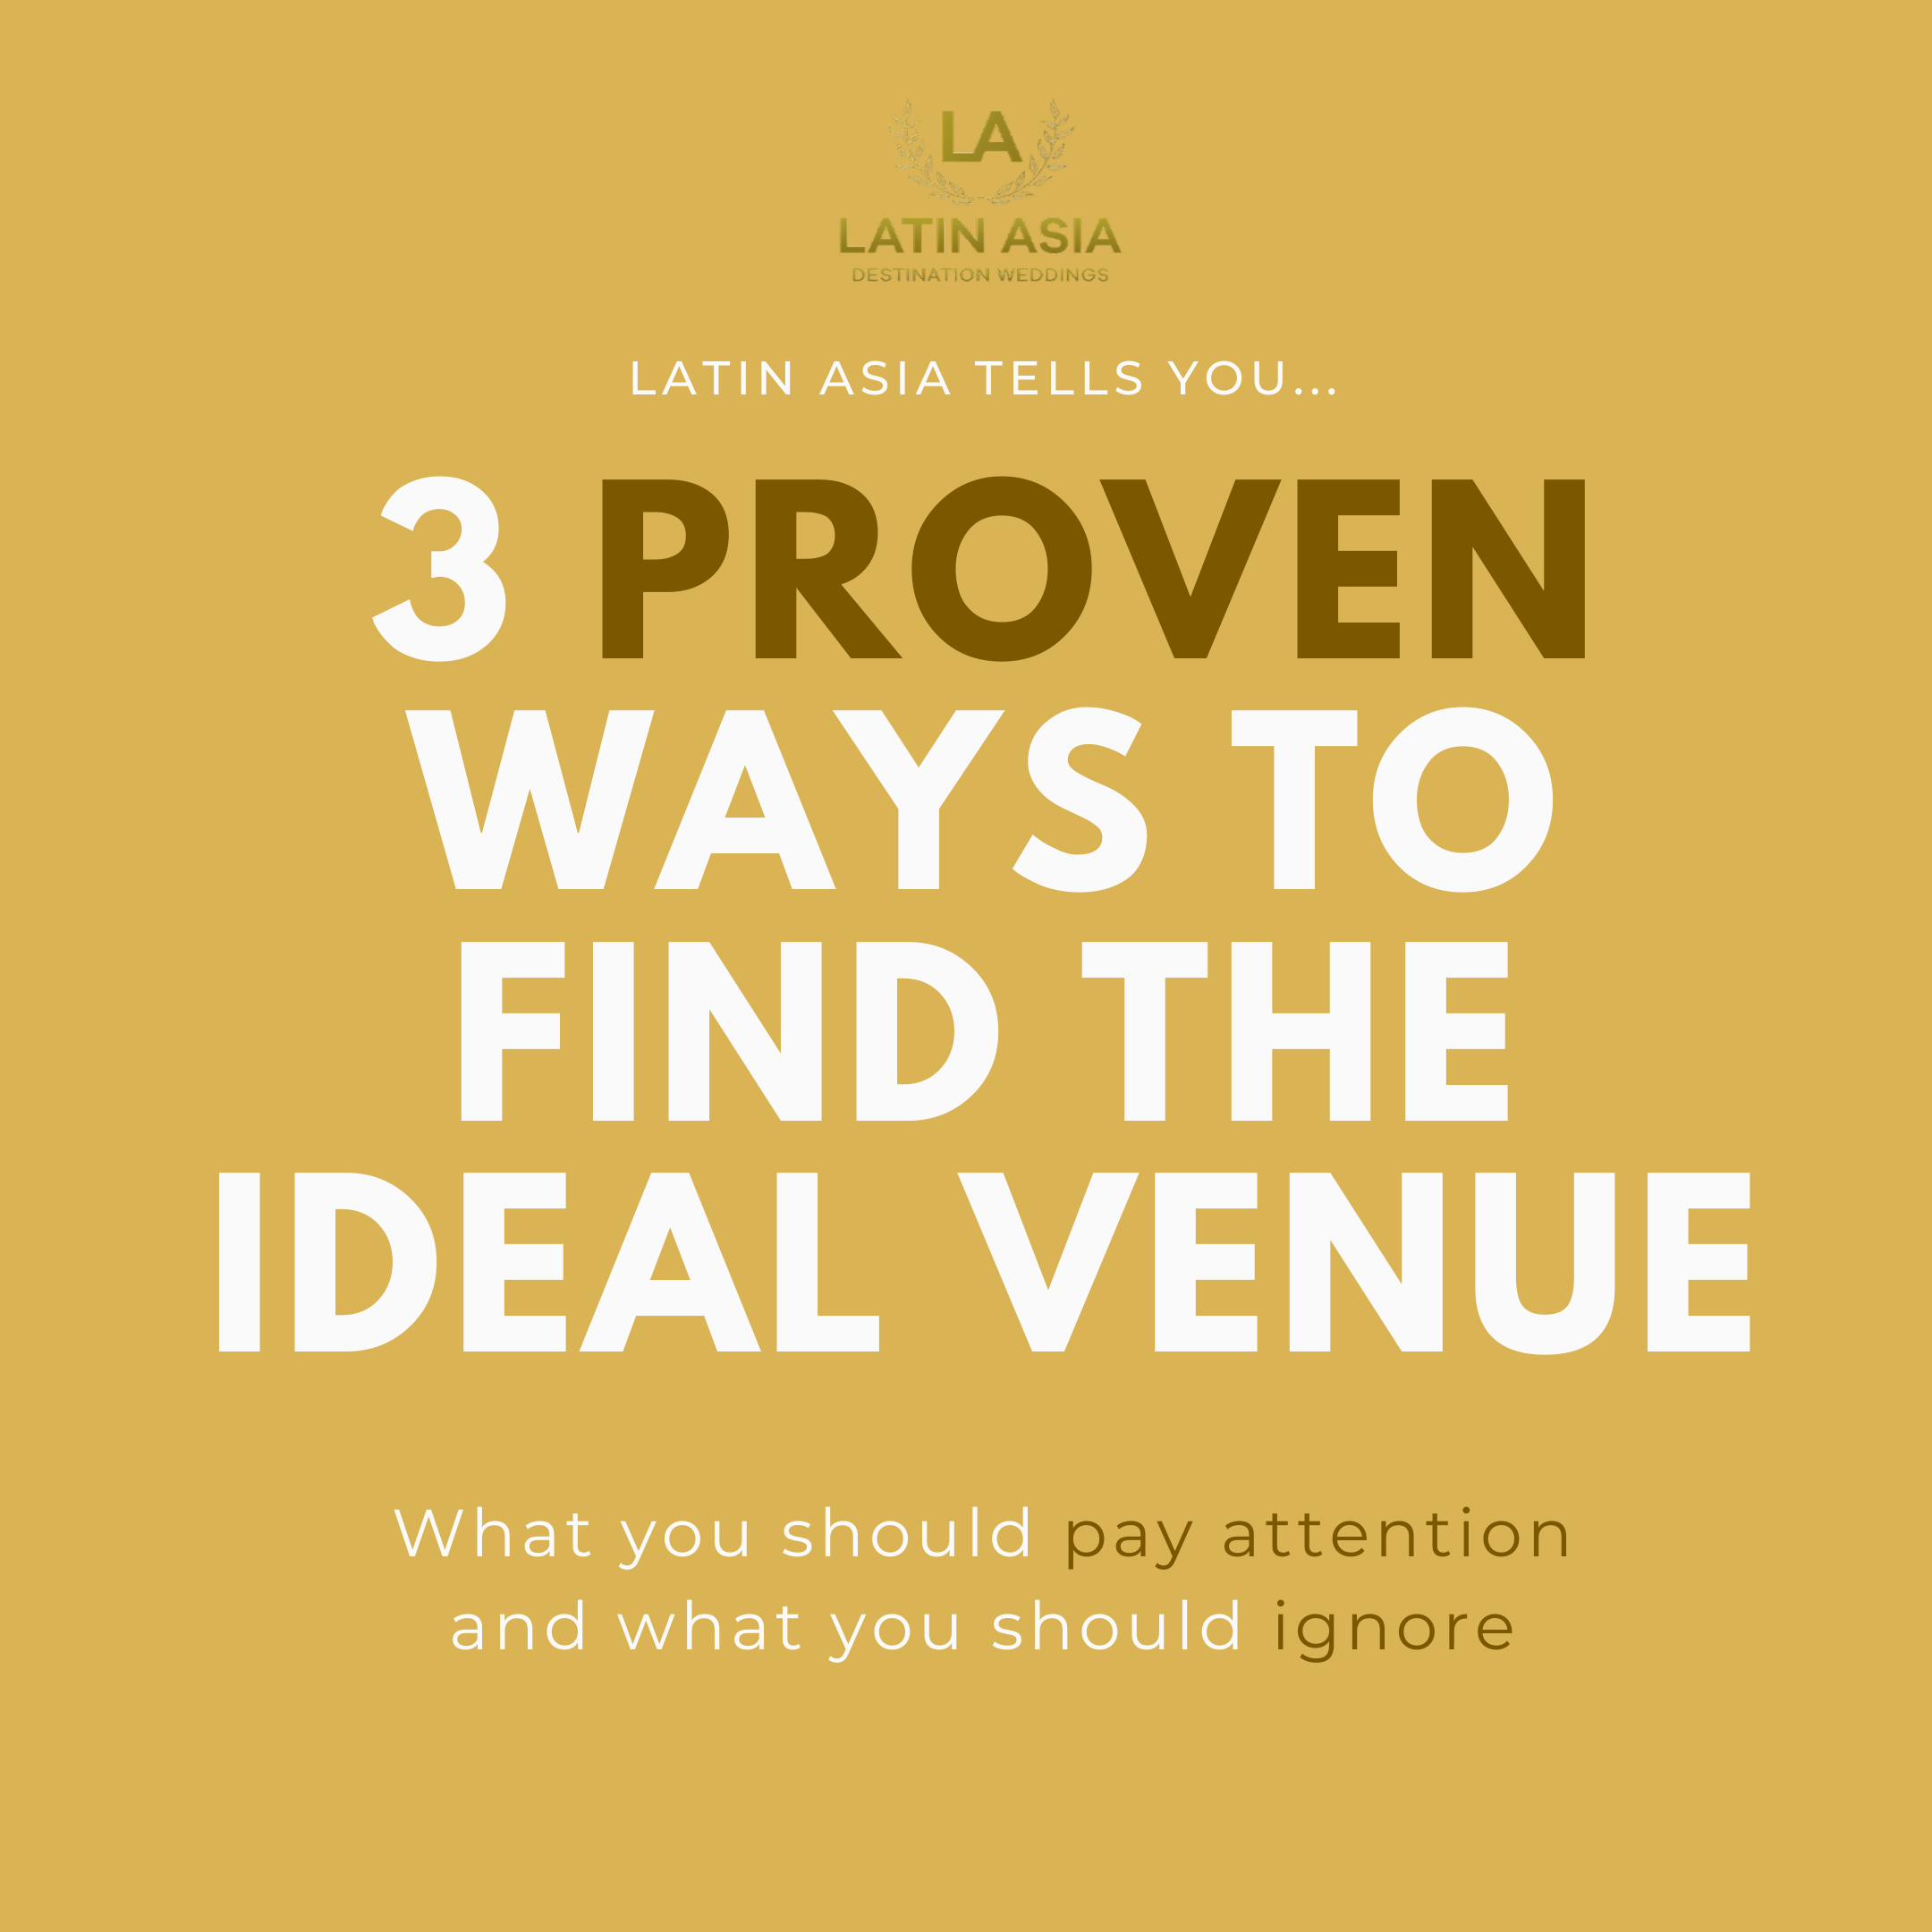 3 proven ways to find the ideal venue